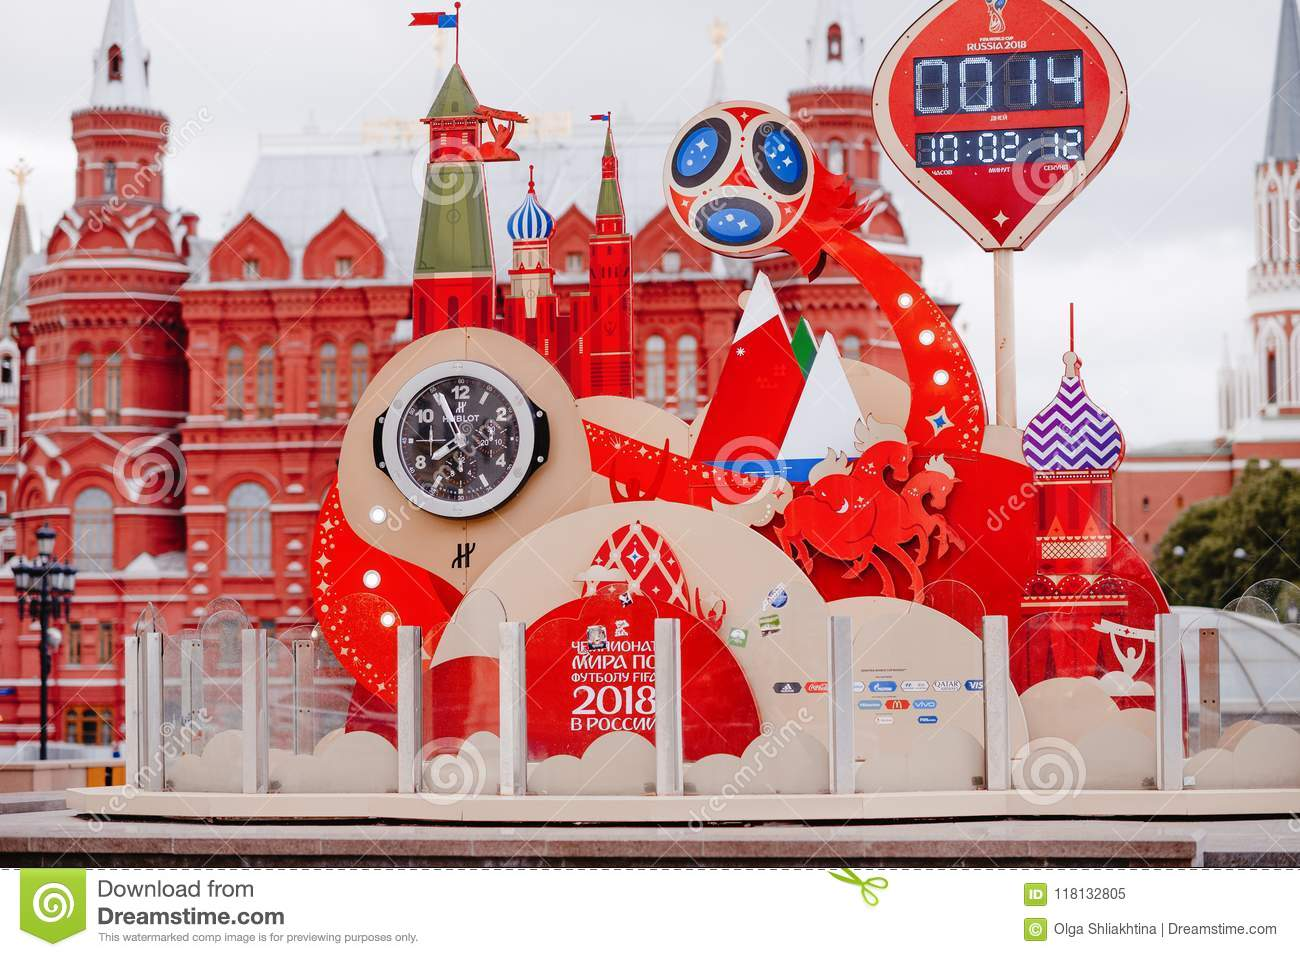 Countdown clock to the start of the fifa world cup 2018 in russia.